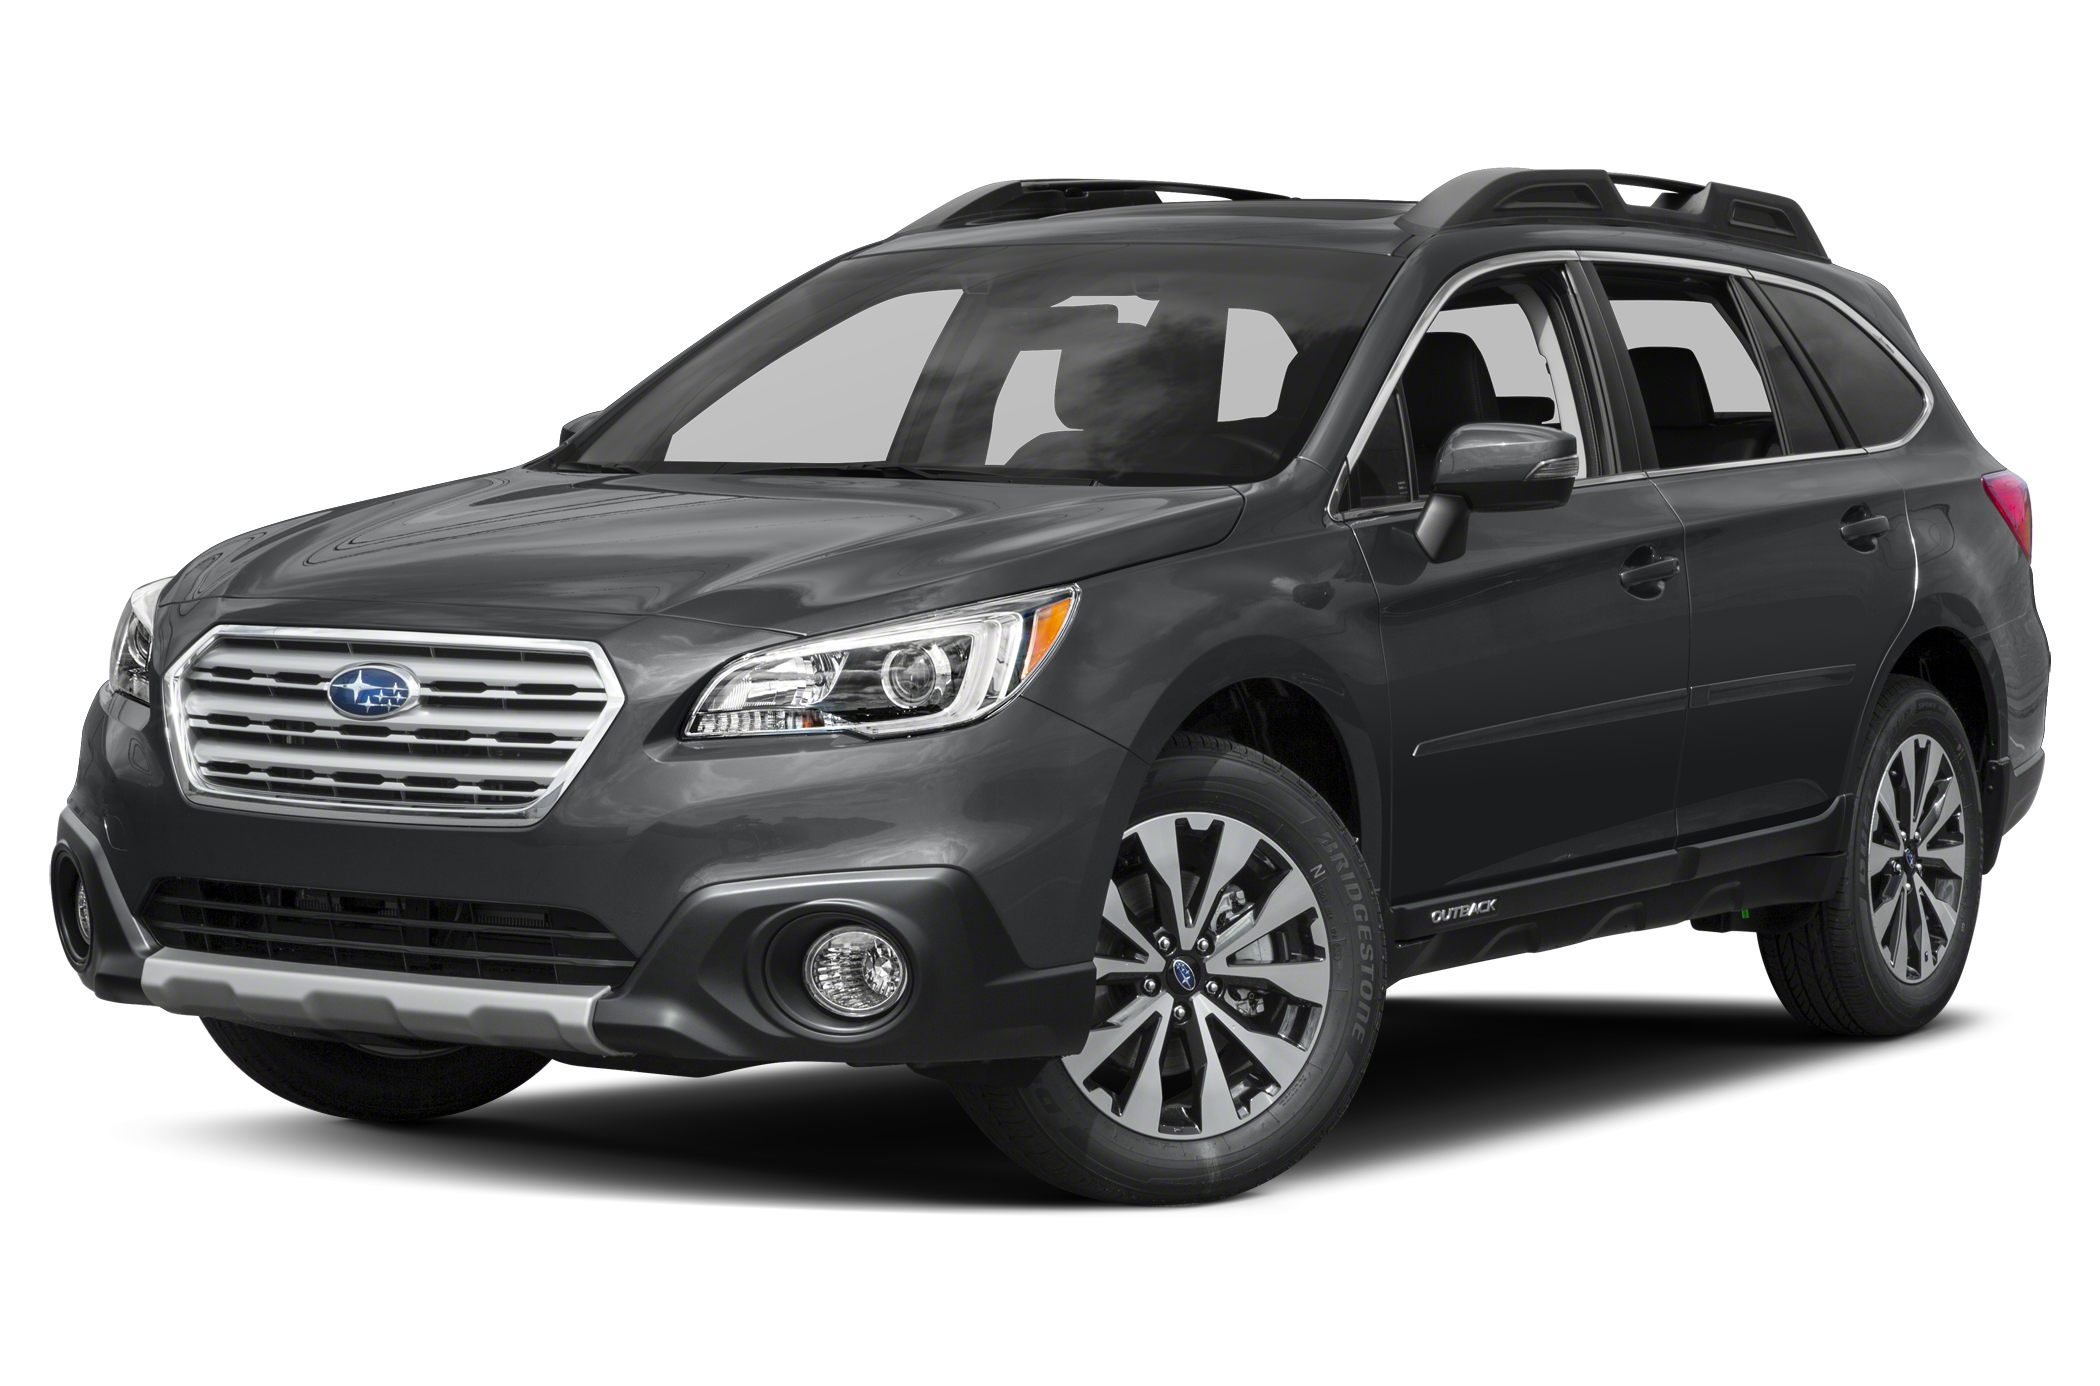 2017 Subaru Outback 36R Limited Miles 6Color Gray Stock 17U214 VIN 4S4BSENC2H3259243